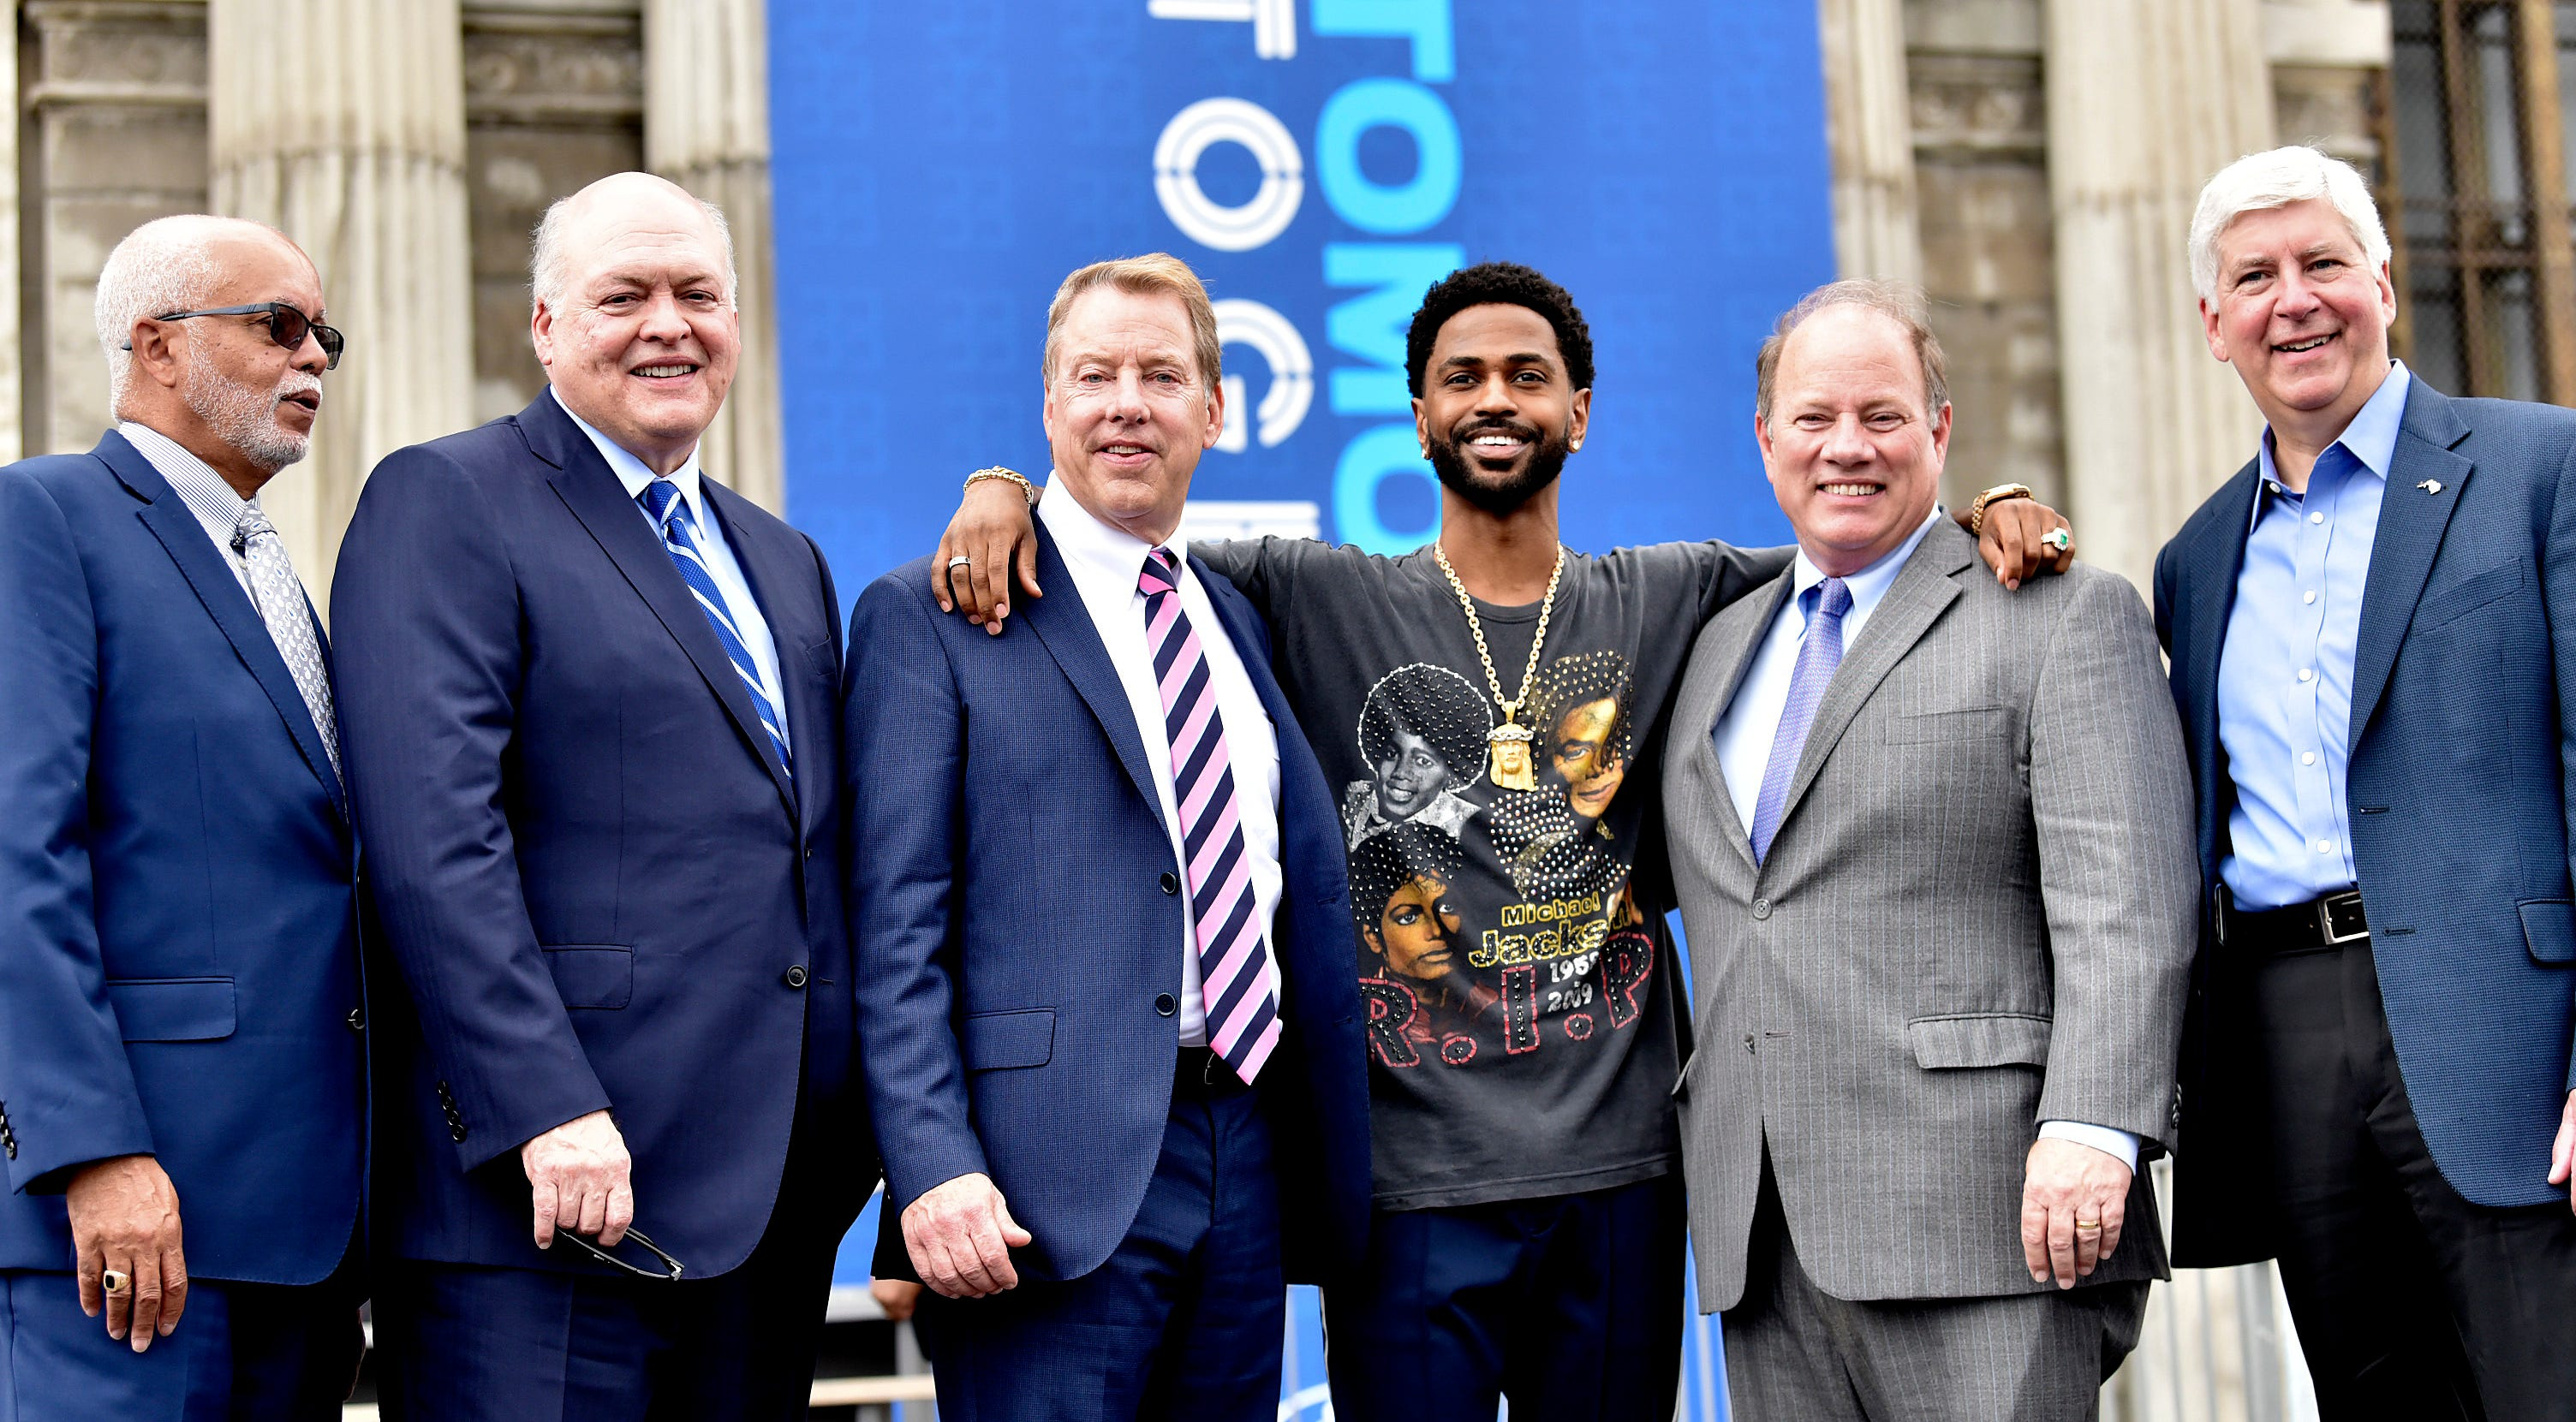 From left, Wayne County Executive Warren Evans, Ford President and CEO Jim Hackett, Ford Executive Chairman Bill Ford Jr., Detroit recording artist Big Sean, Detroit Mayor Mike Duggan and Michigan Gov. Rick Snyder pose in front of the Michigan Central Station on June 19, 2018. The long-abandoned 1914 train station will become Ford's center for autonomous vehicle development.